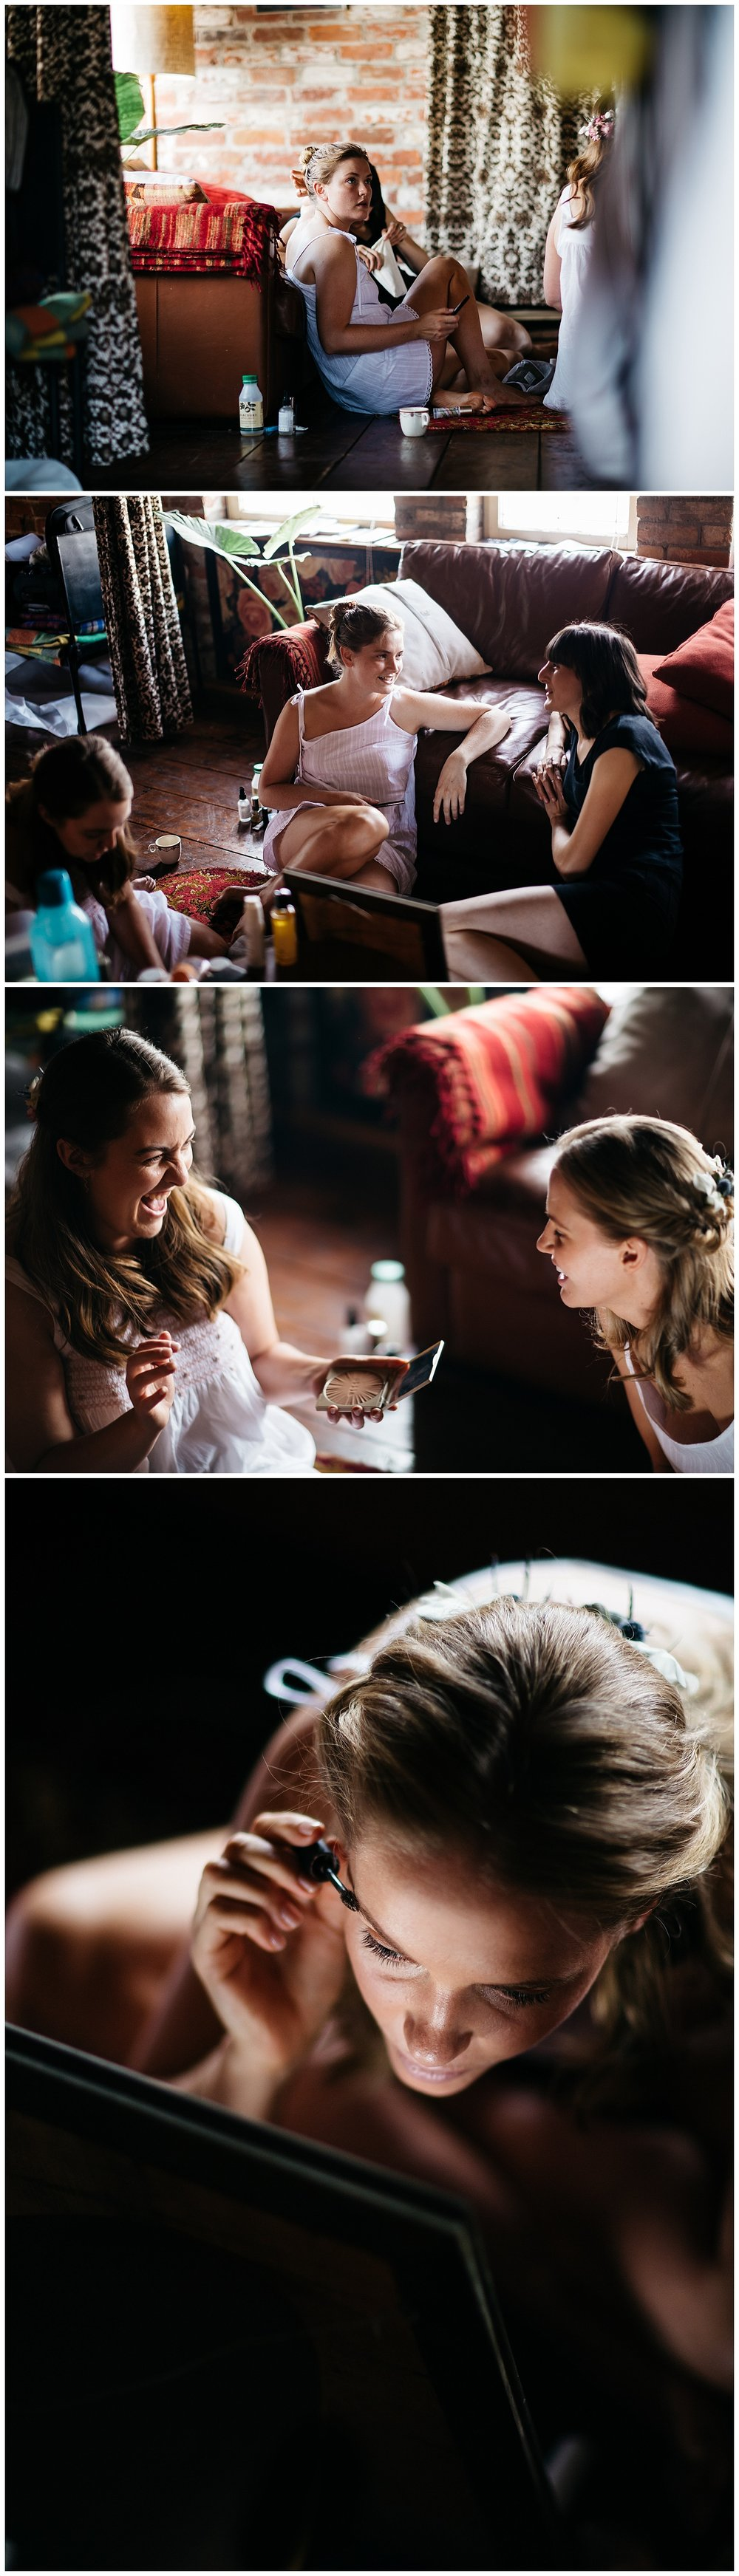 Castelmaine_Melbourne_Wedding_Photographer_0010.jpg